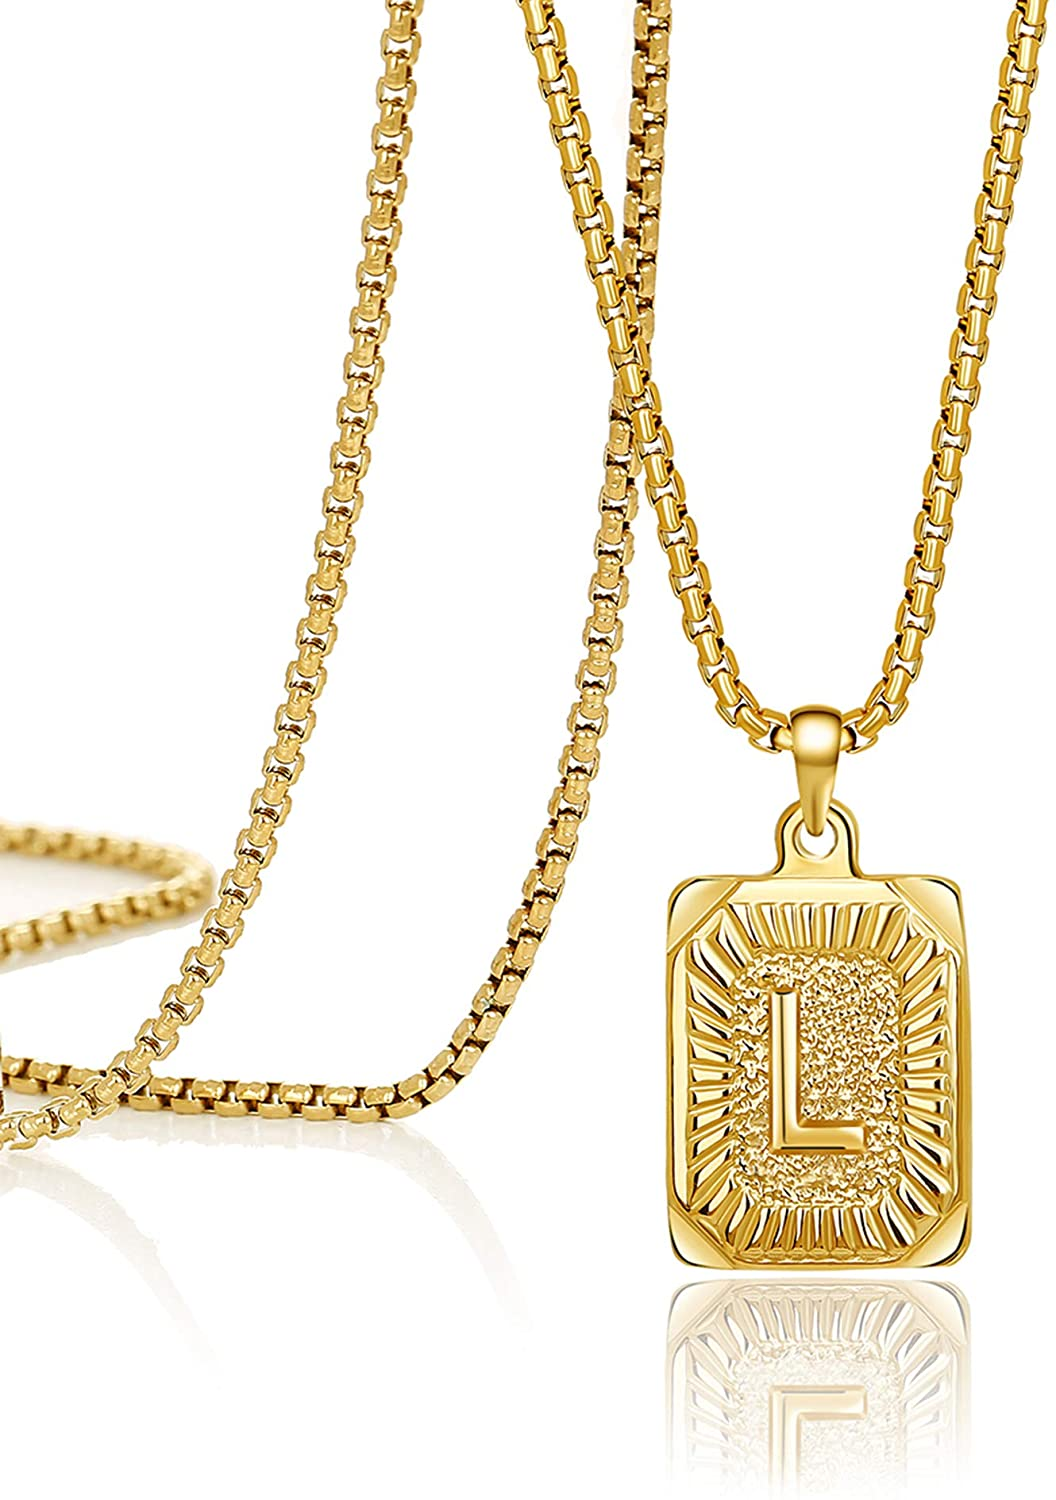 JoycuFF 18K Gold Filled Initial Capital Letter Pendant Necklace Square Alphabet Rectangle Medallion Personalized Handmade Stainless Steel Simple Jewelry Gifts for Women Men Teenagers Best Friends